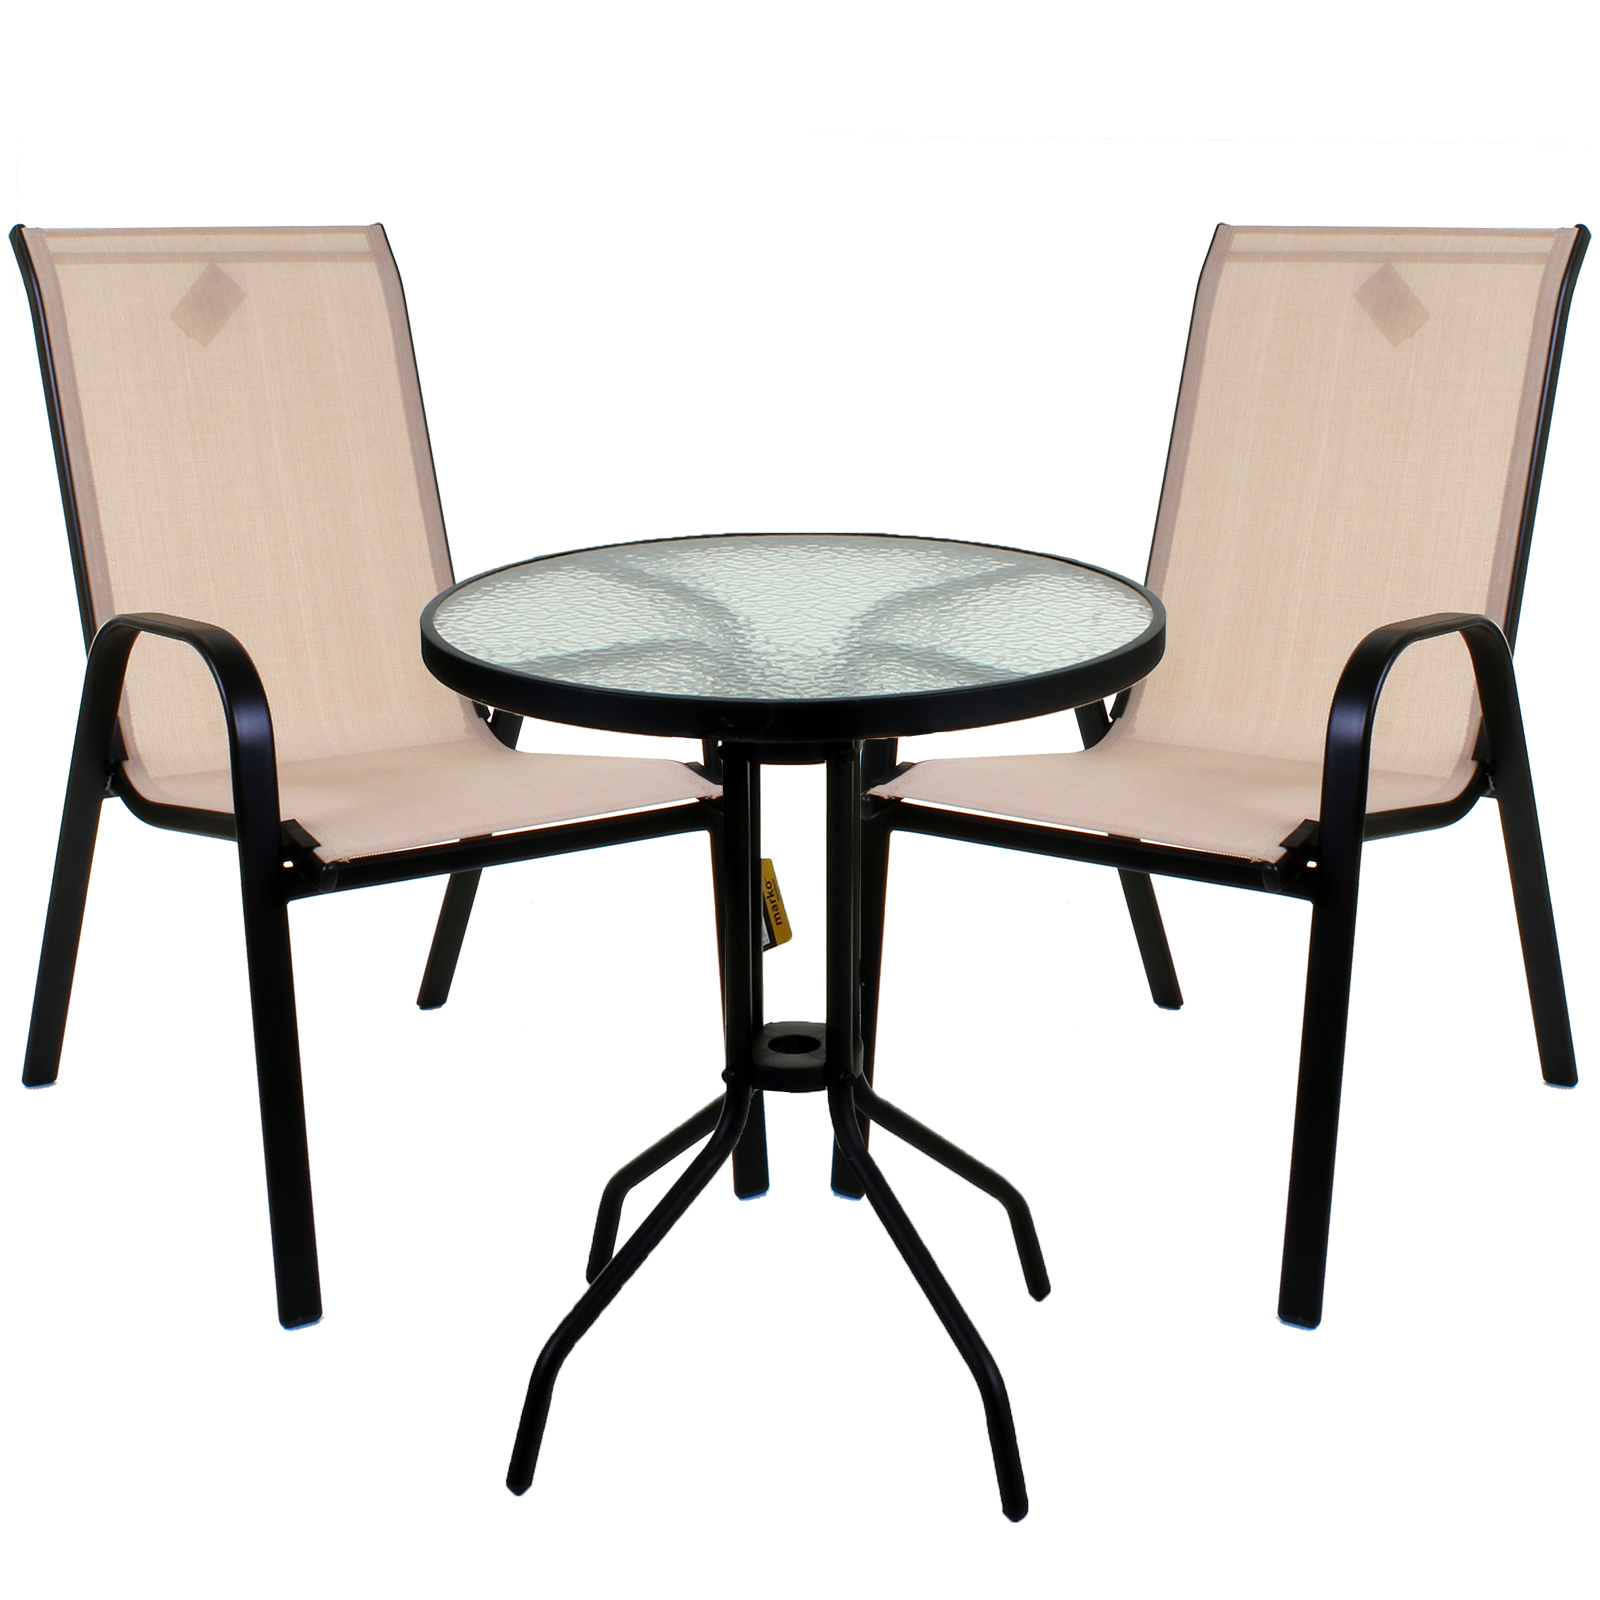 garden furniture set outdoor patio round rectangular bistro table chairs seating. Black Bedroom Furniture Sets. Home Design Ideas